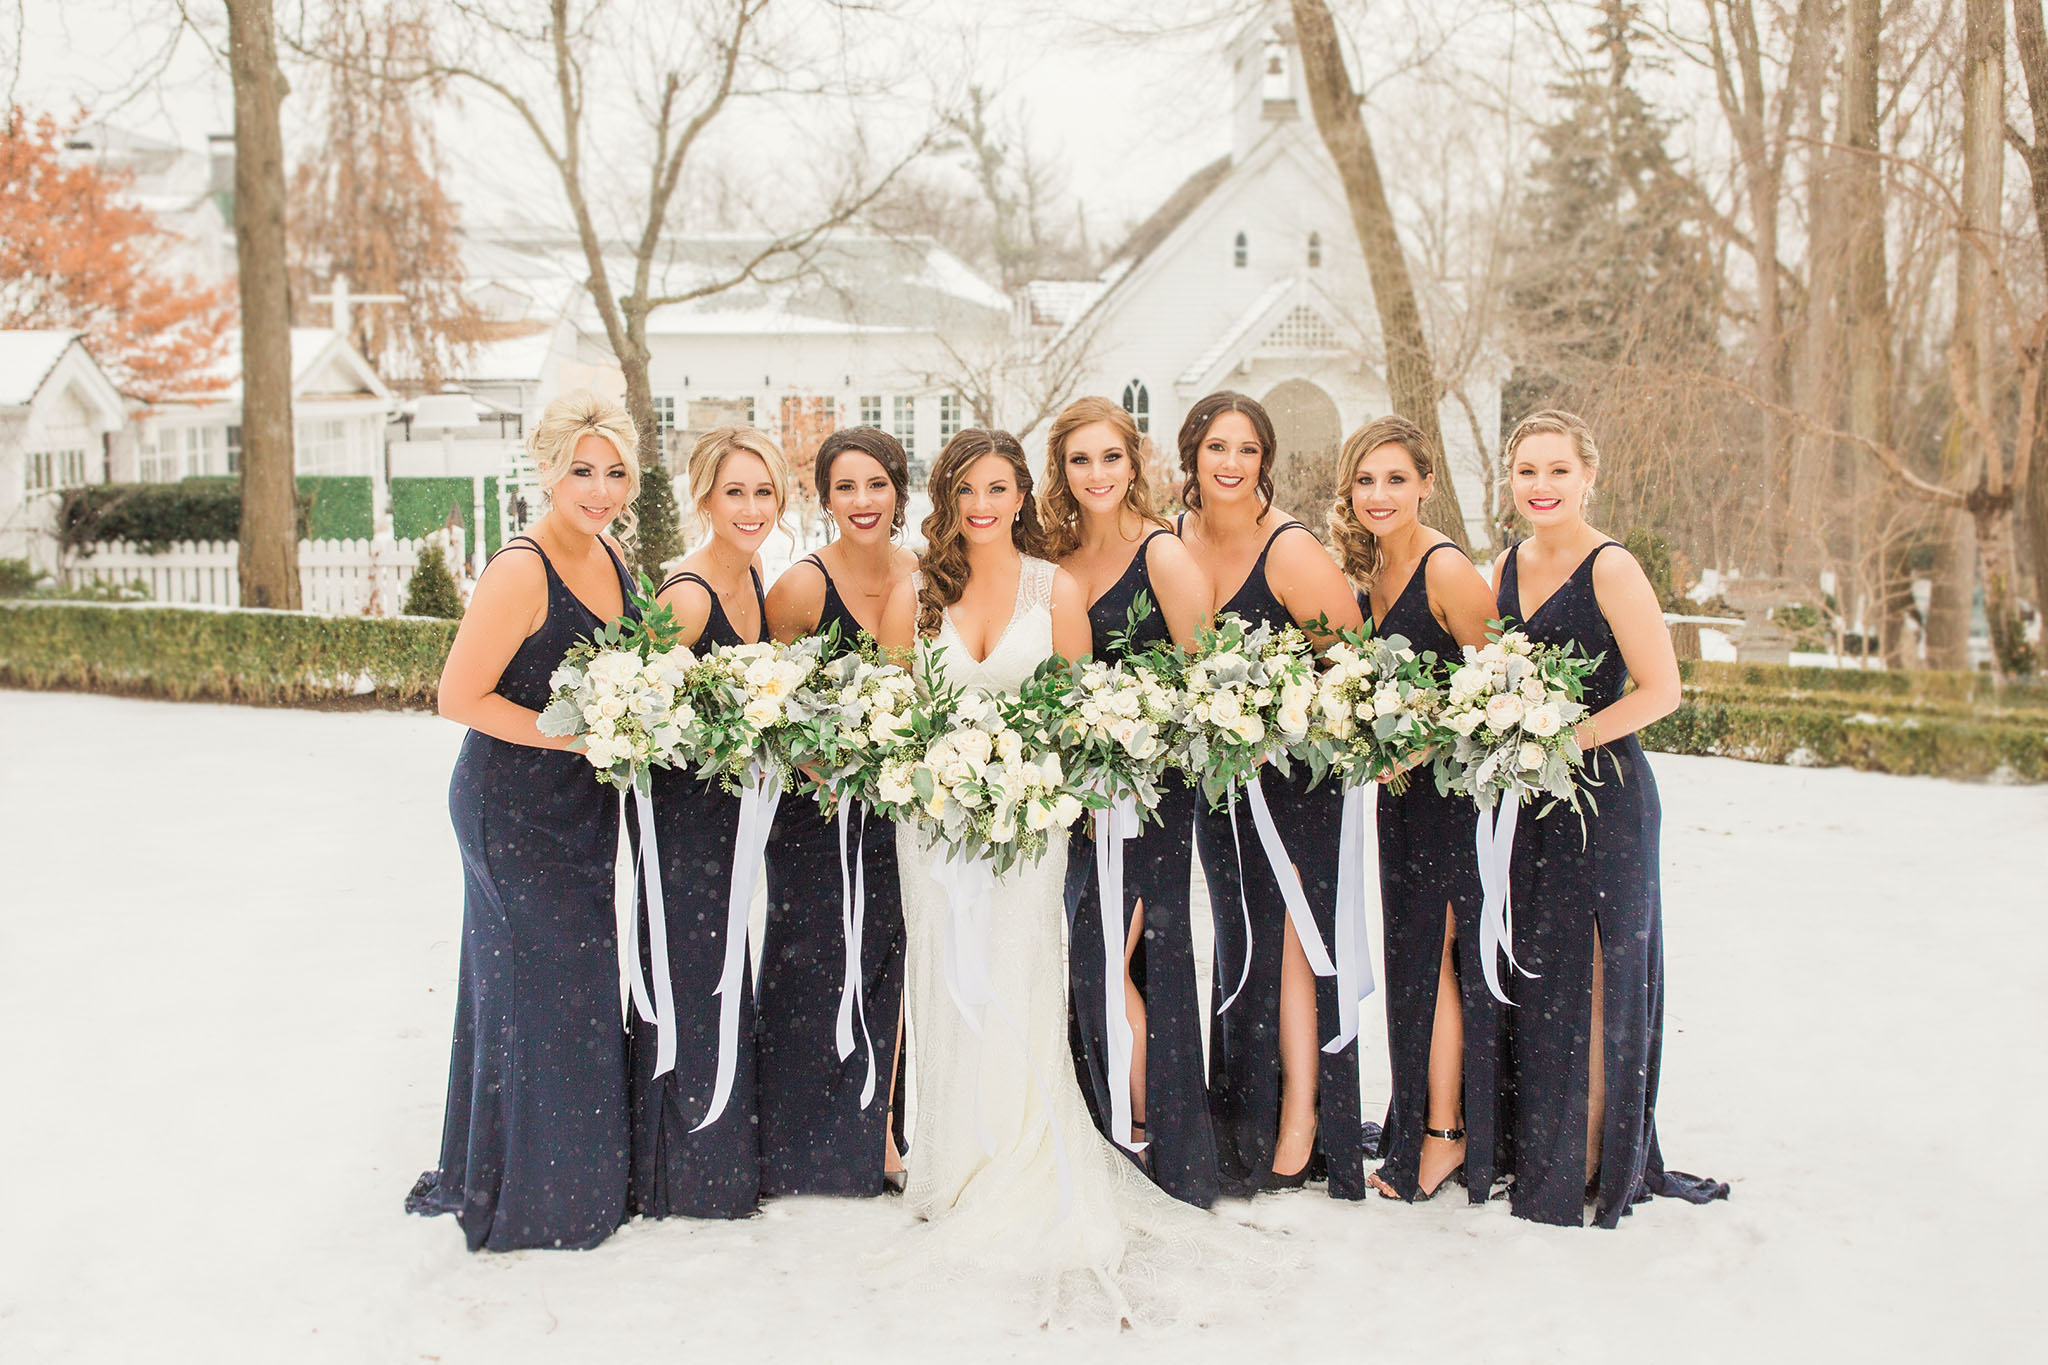 Eight beautiful ladies all outside with snow all around. Standing in front of heritage house with green hedges and gorgeous white floral bouquets.